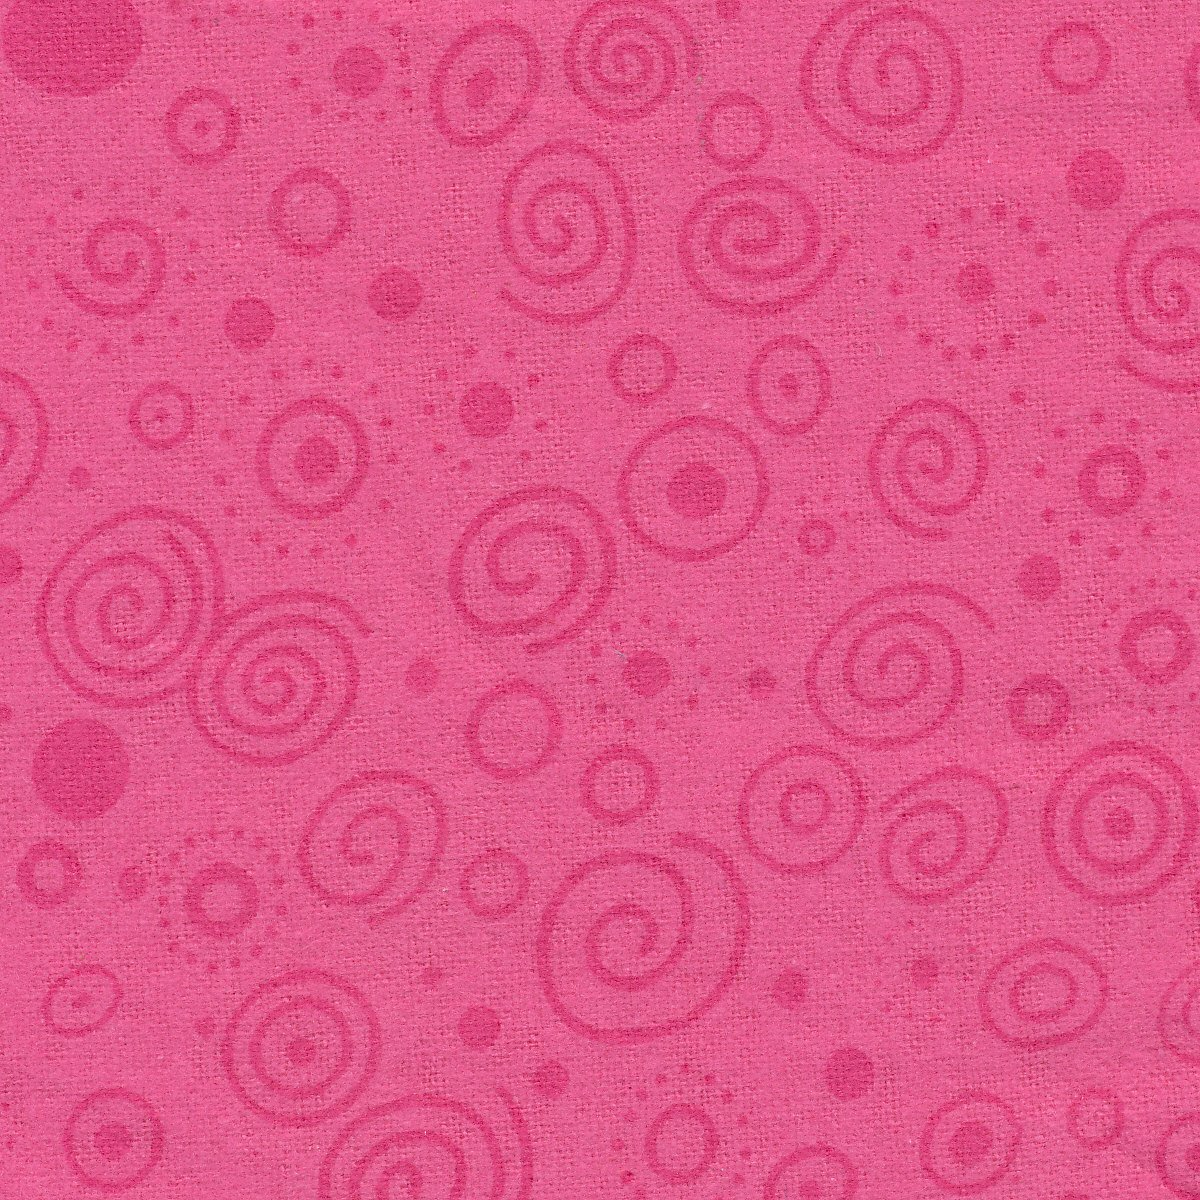 Quilt Backing Flannel 110 Wide - 9030-2